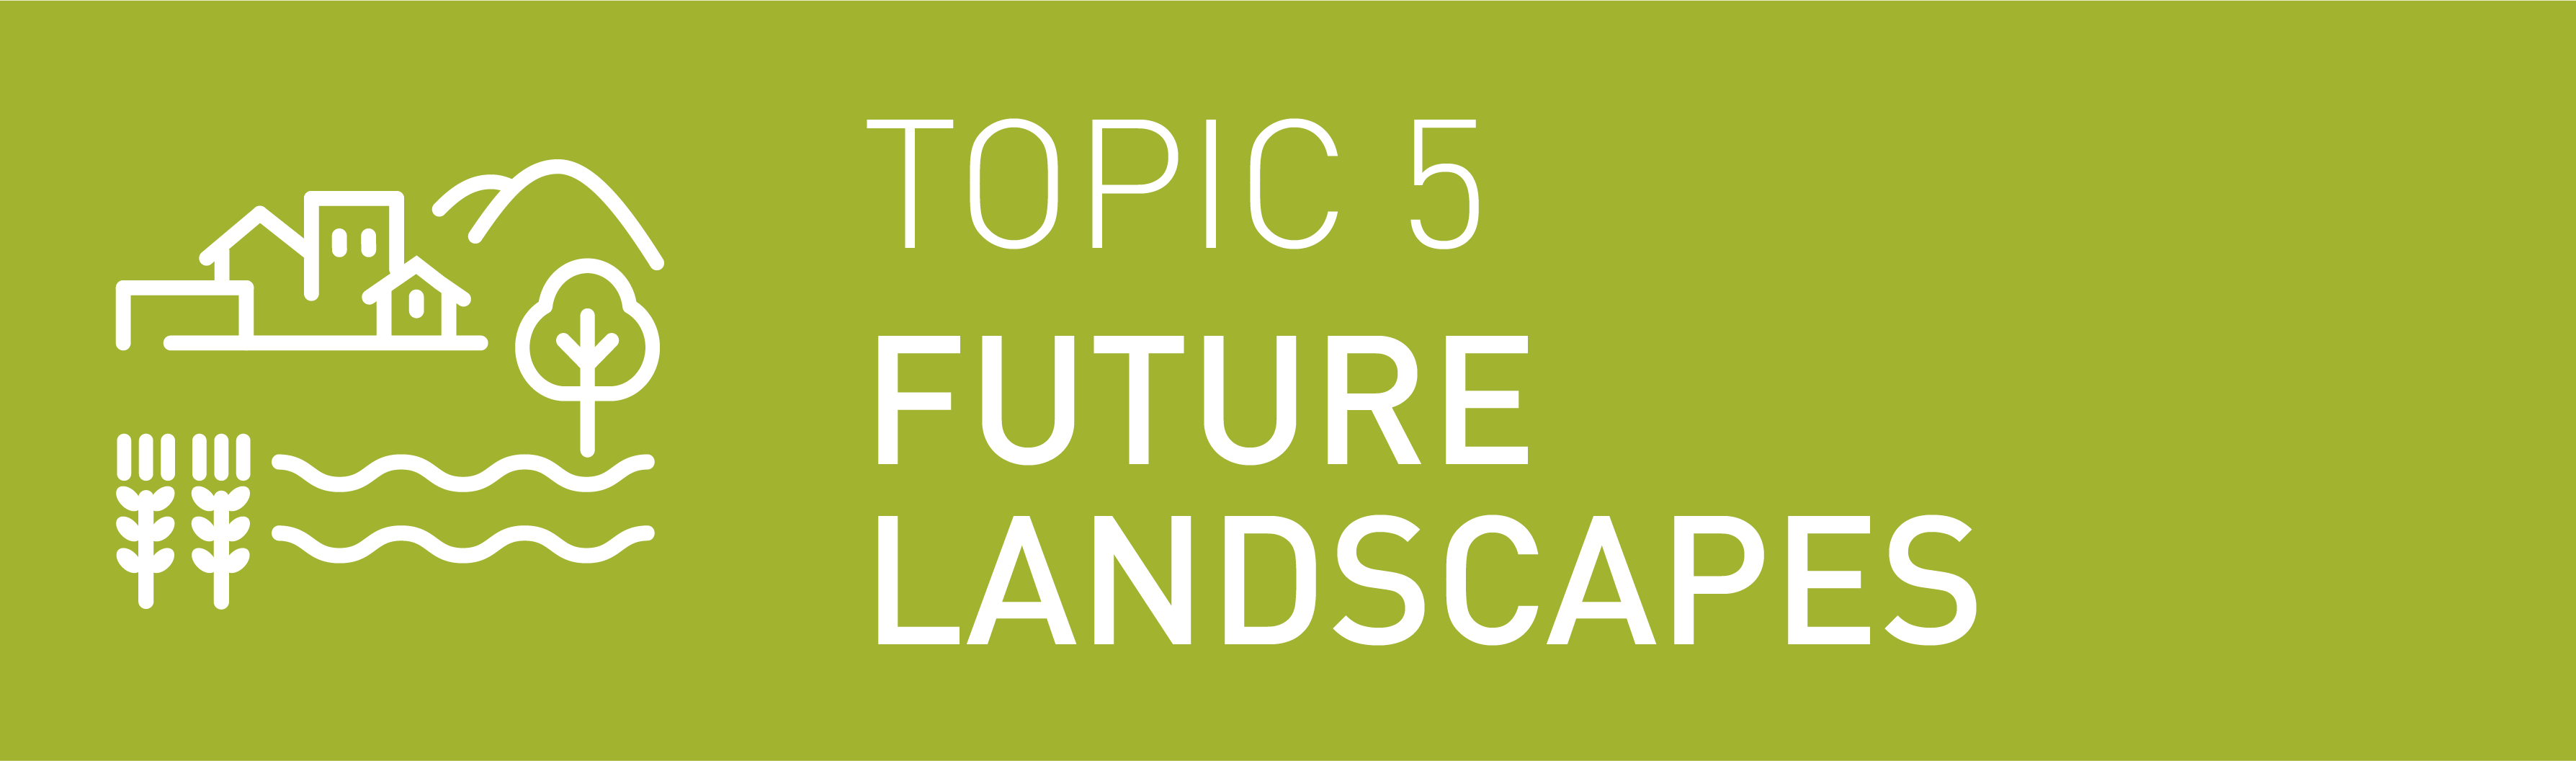 Icon Topic 5 Future Landscapes